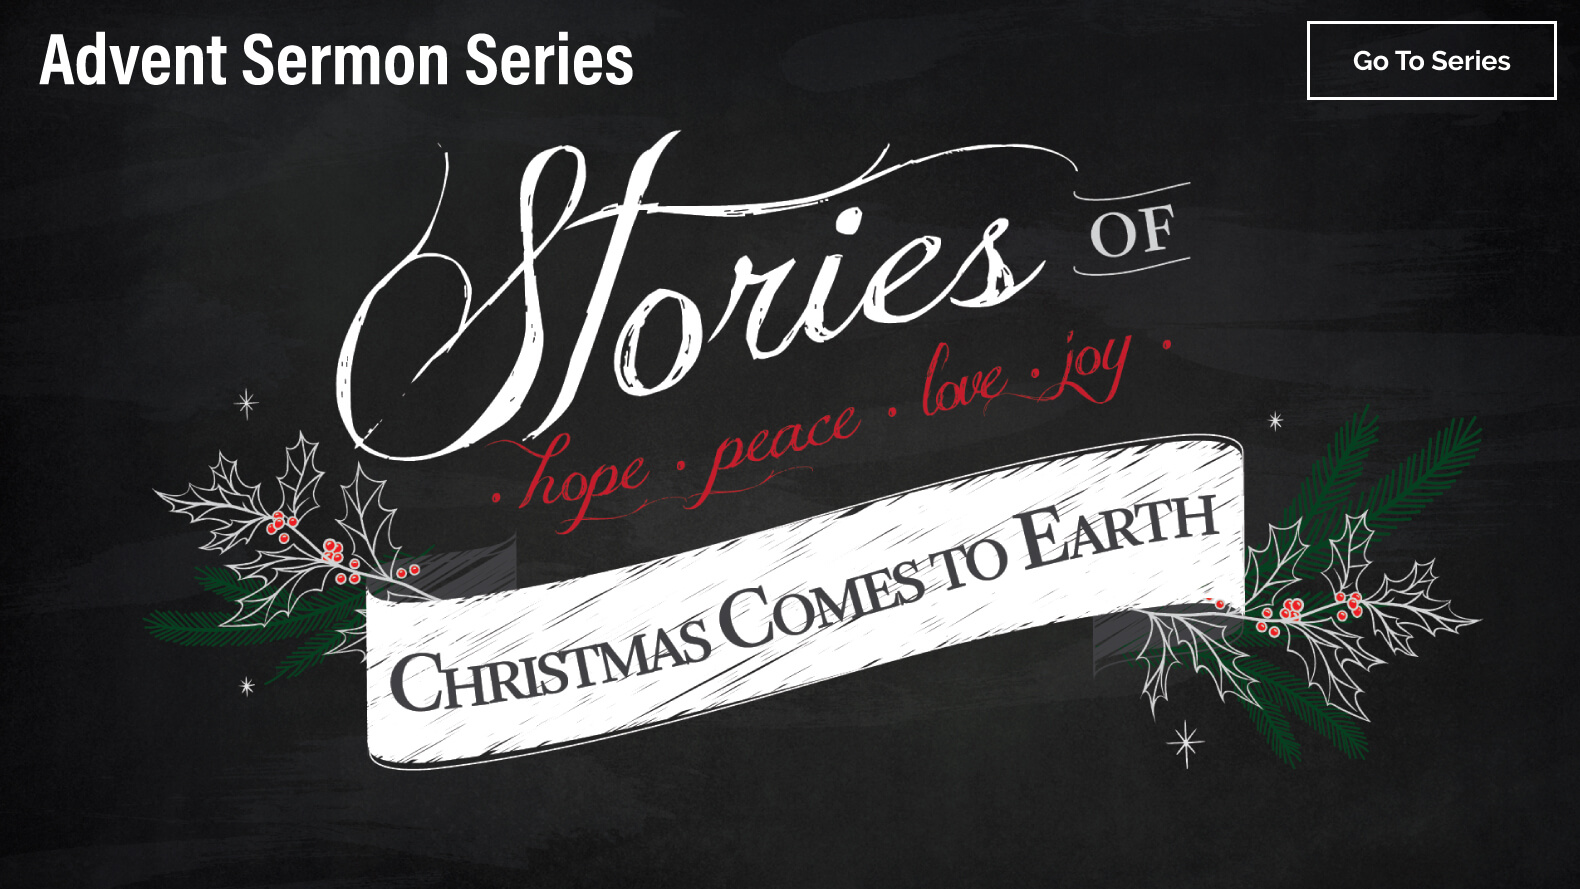 Advent-Sermon-Series-Image